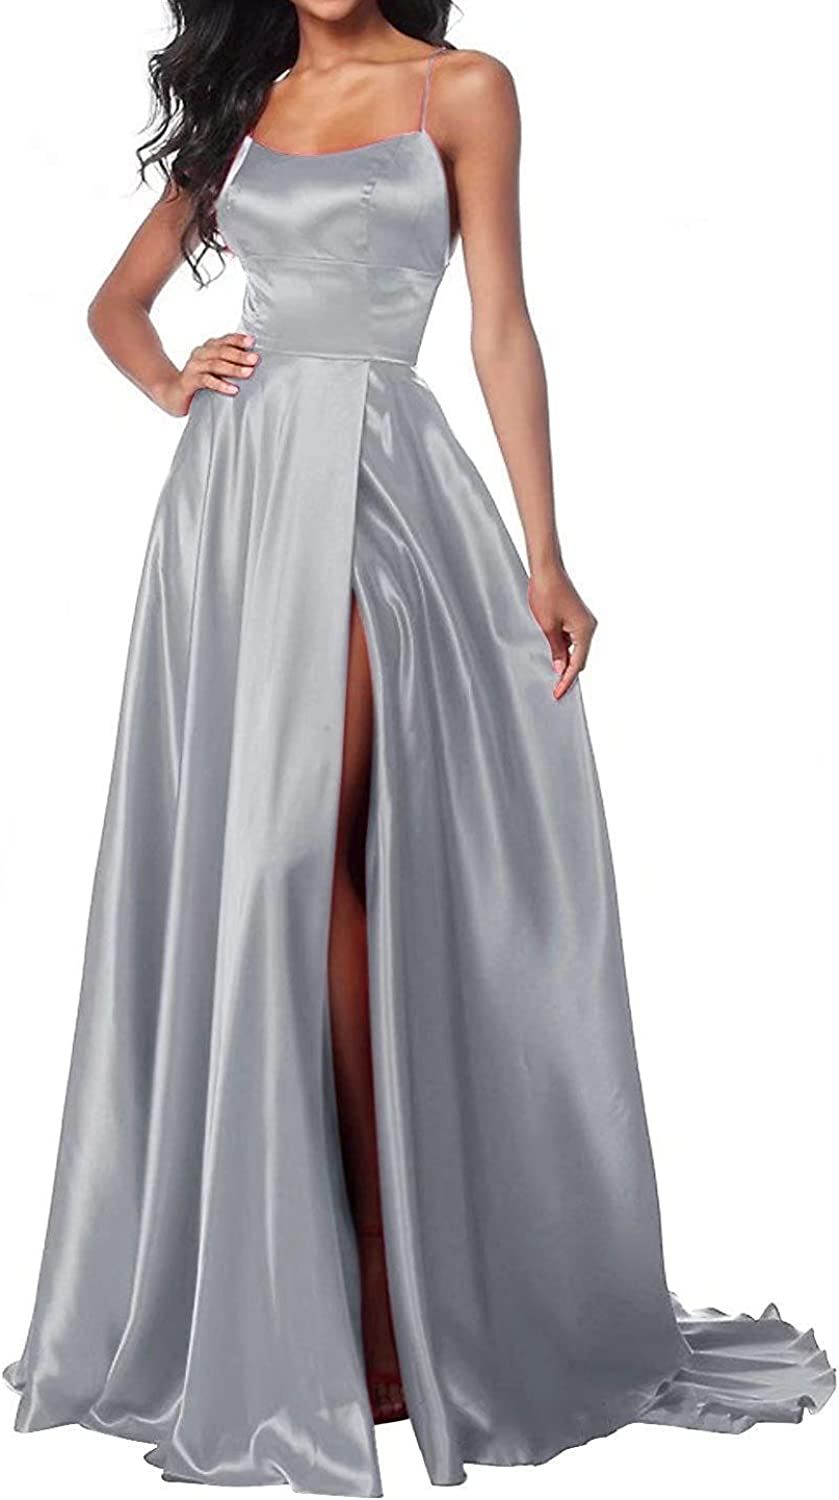 JQLD Women's Sexy Sweetheart Straps A Line Side Slit Prom Dresses Long Backless Evening Formal Gowns